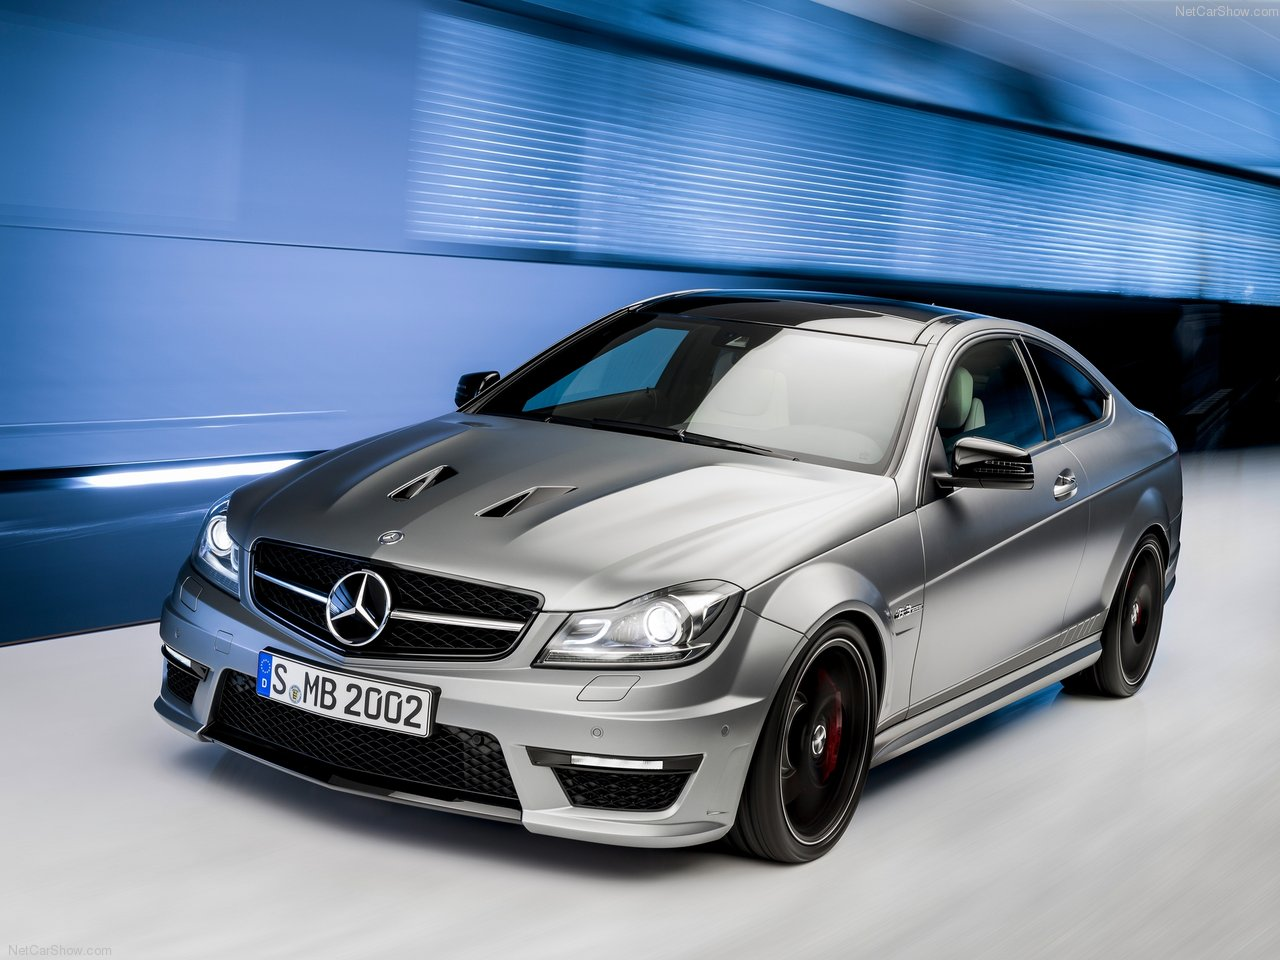 WatchCarOnline: Mercedes-Benz C63 AMG 2014